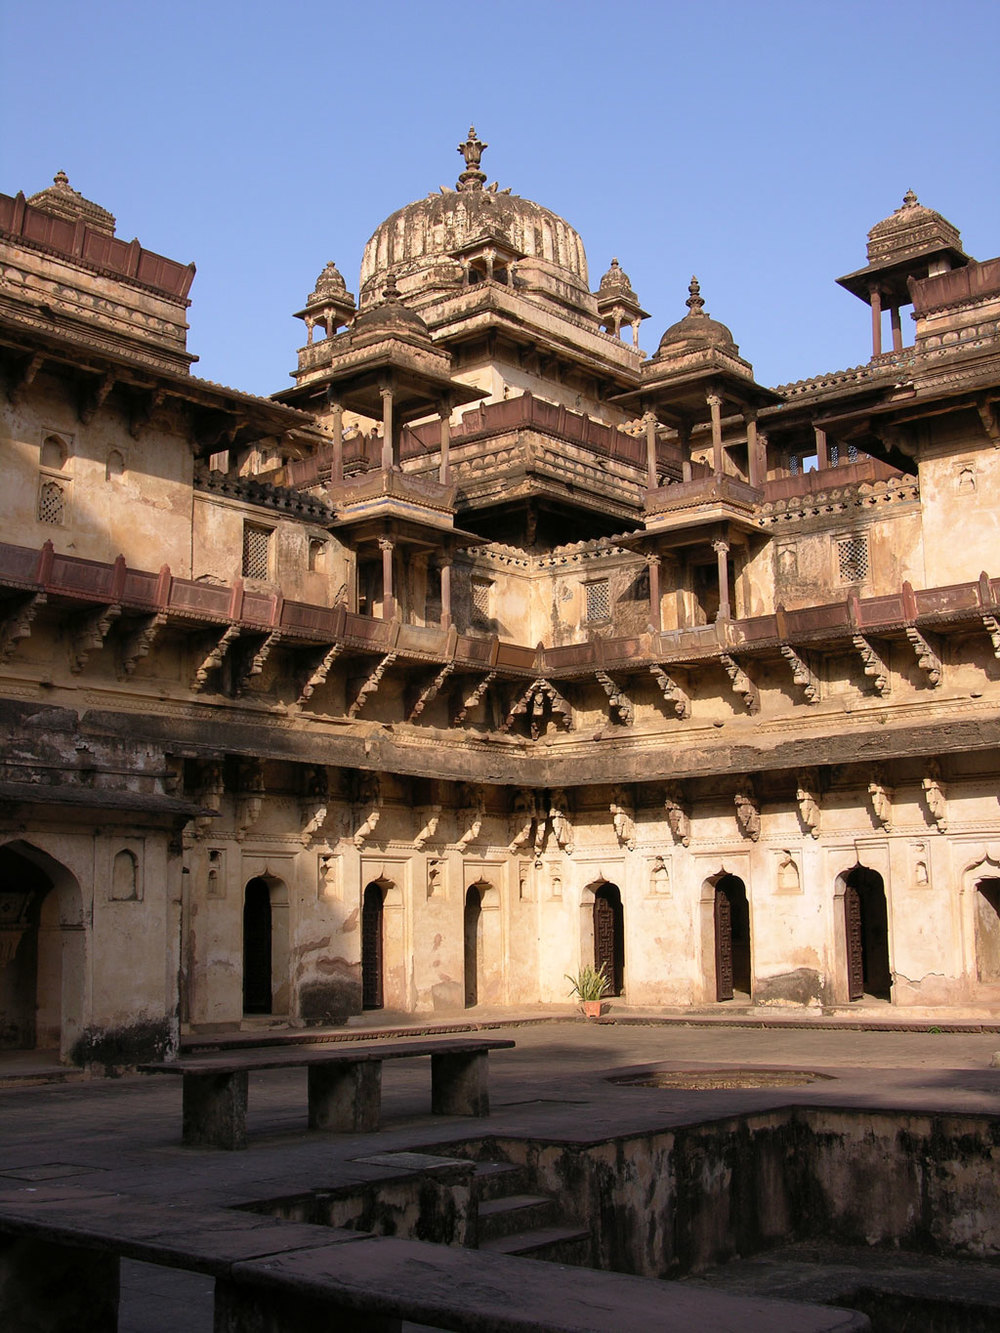 Orchha Photo credit: Sanjay Chatterji